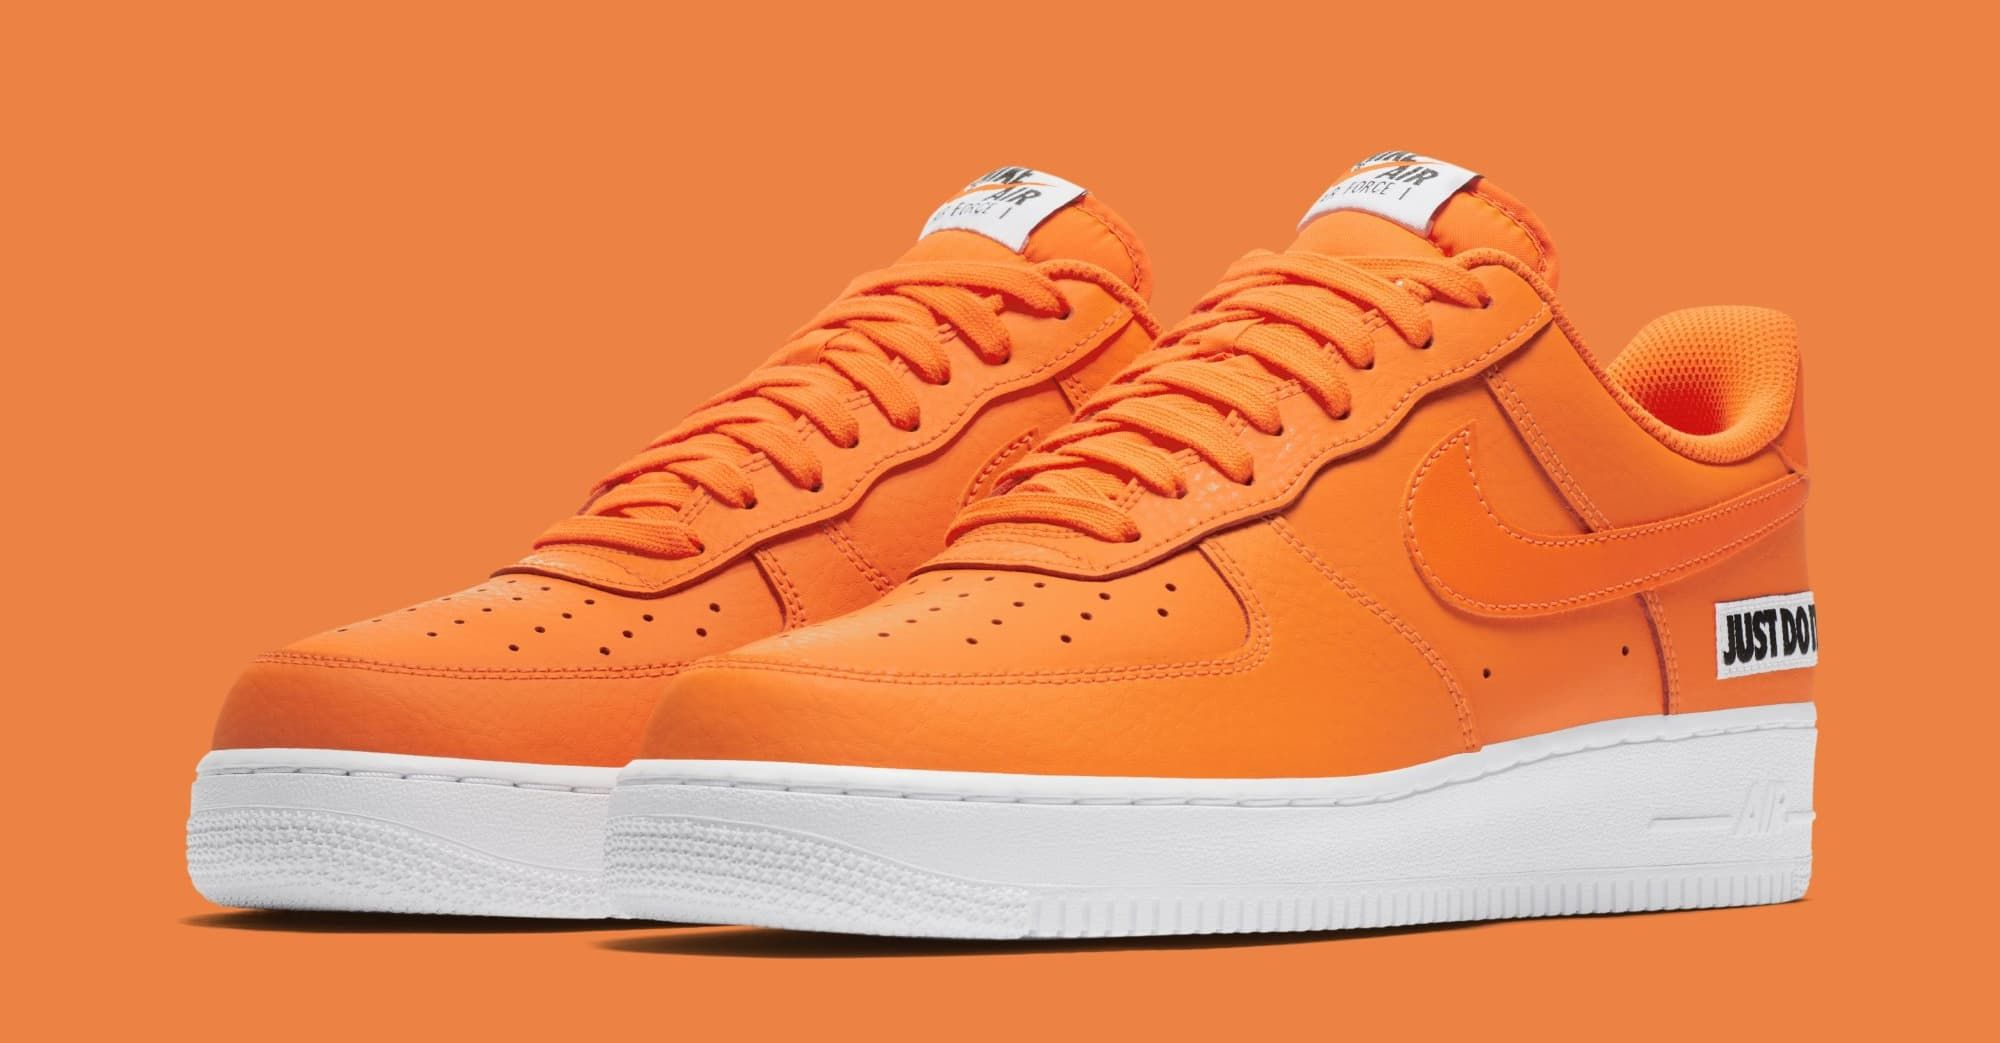 846e3314929a6 Nike Air Force 1 Low  Just Do It  BQ5360-800 (Pair)